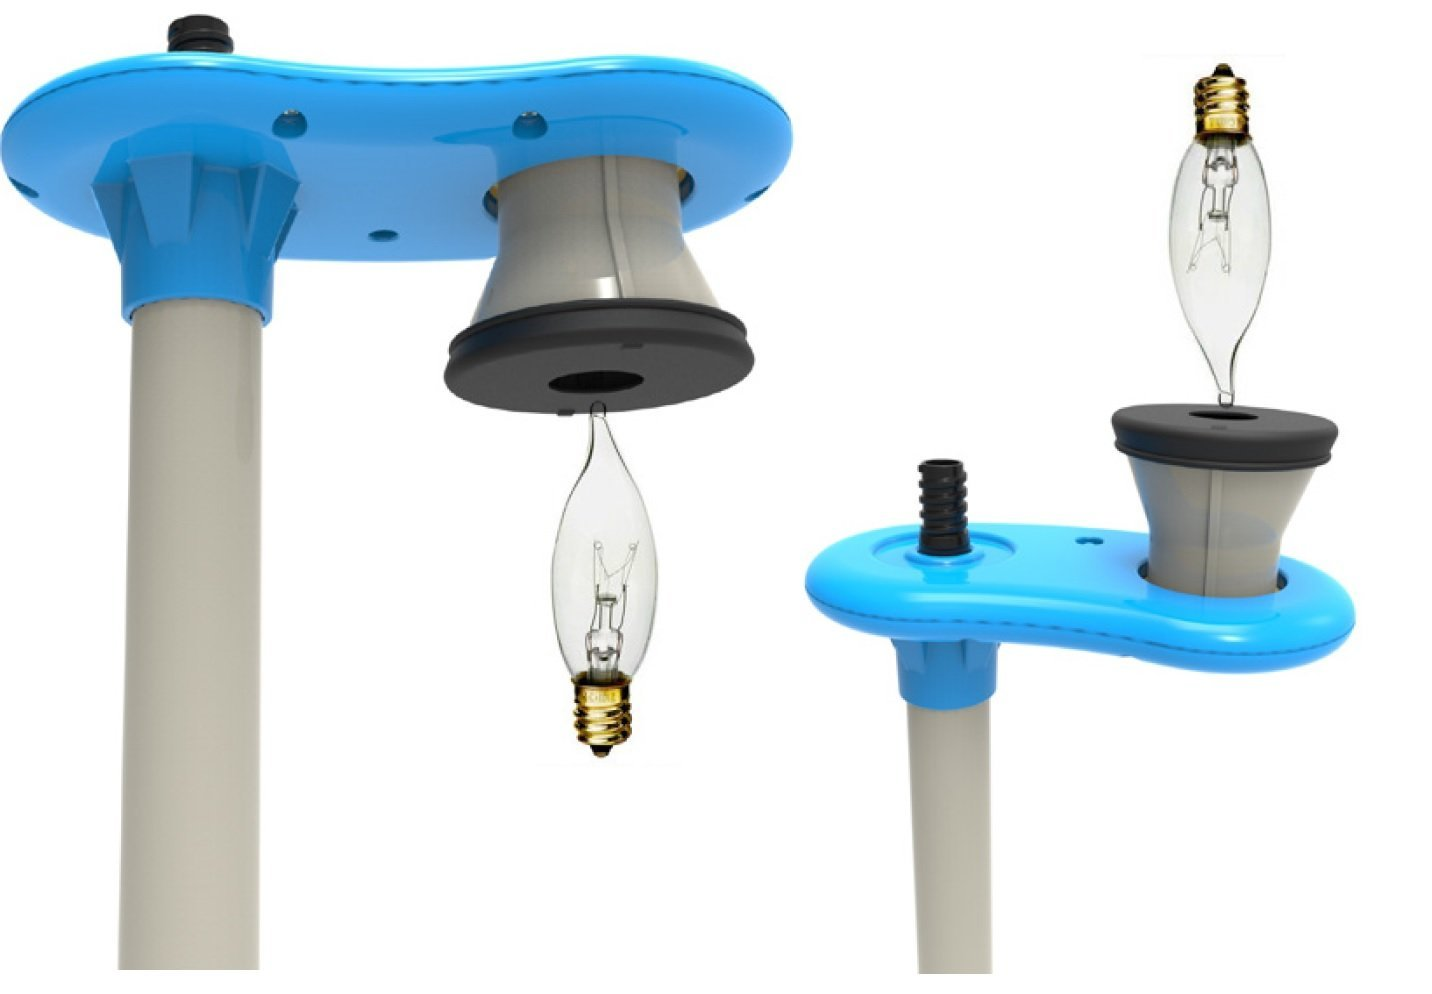 HighLight Chandelier Light Bulb Changer for High Ceilings - 6 Foot Telescoping Extension Pole with Sticky Bulb Grabber for Upward and Downward Facing Bulbs - For Candelabra Bulbs Only